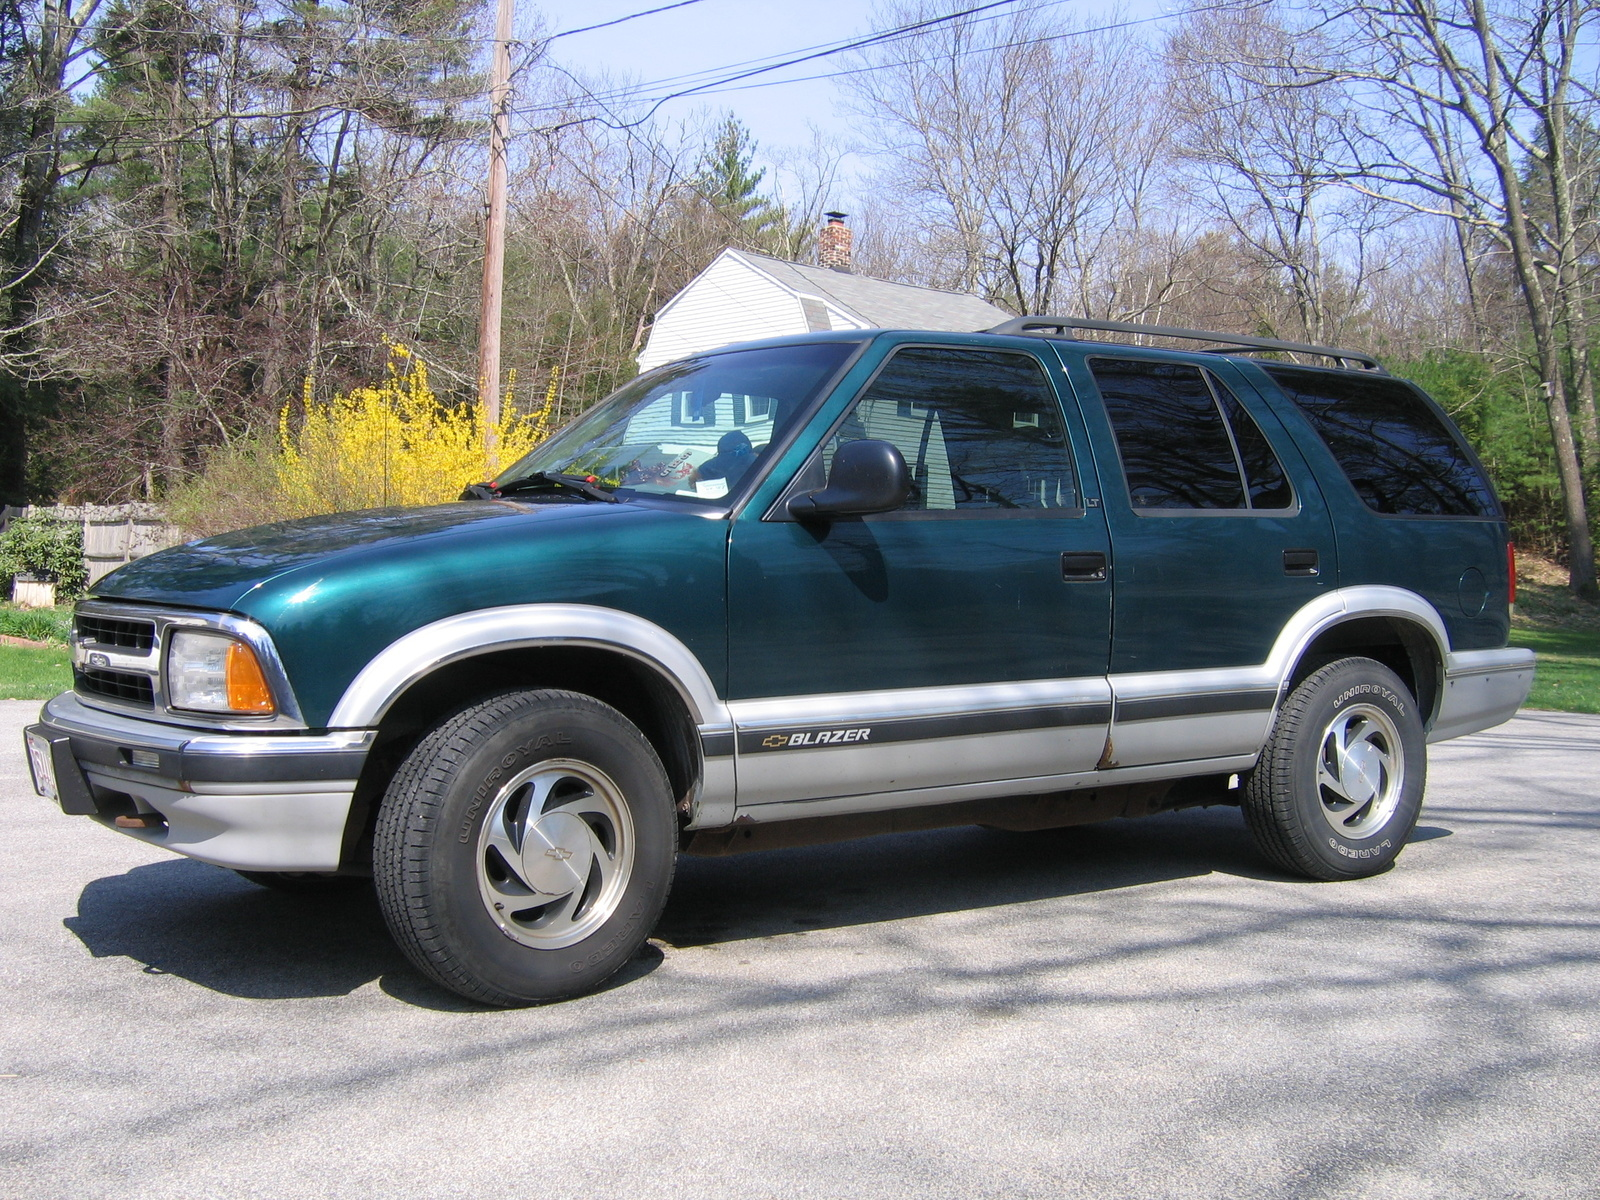 Chevrolet Blazer Dr Lt Wd Suv Pic X on Chevy Lumina Van